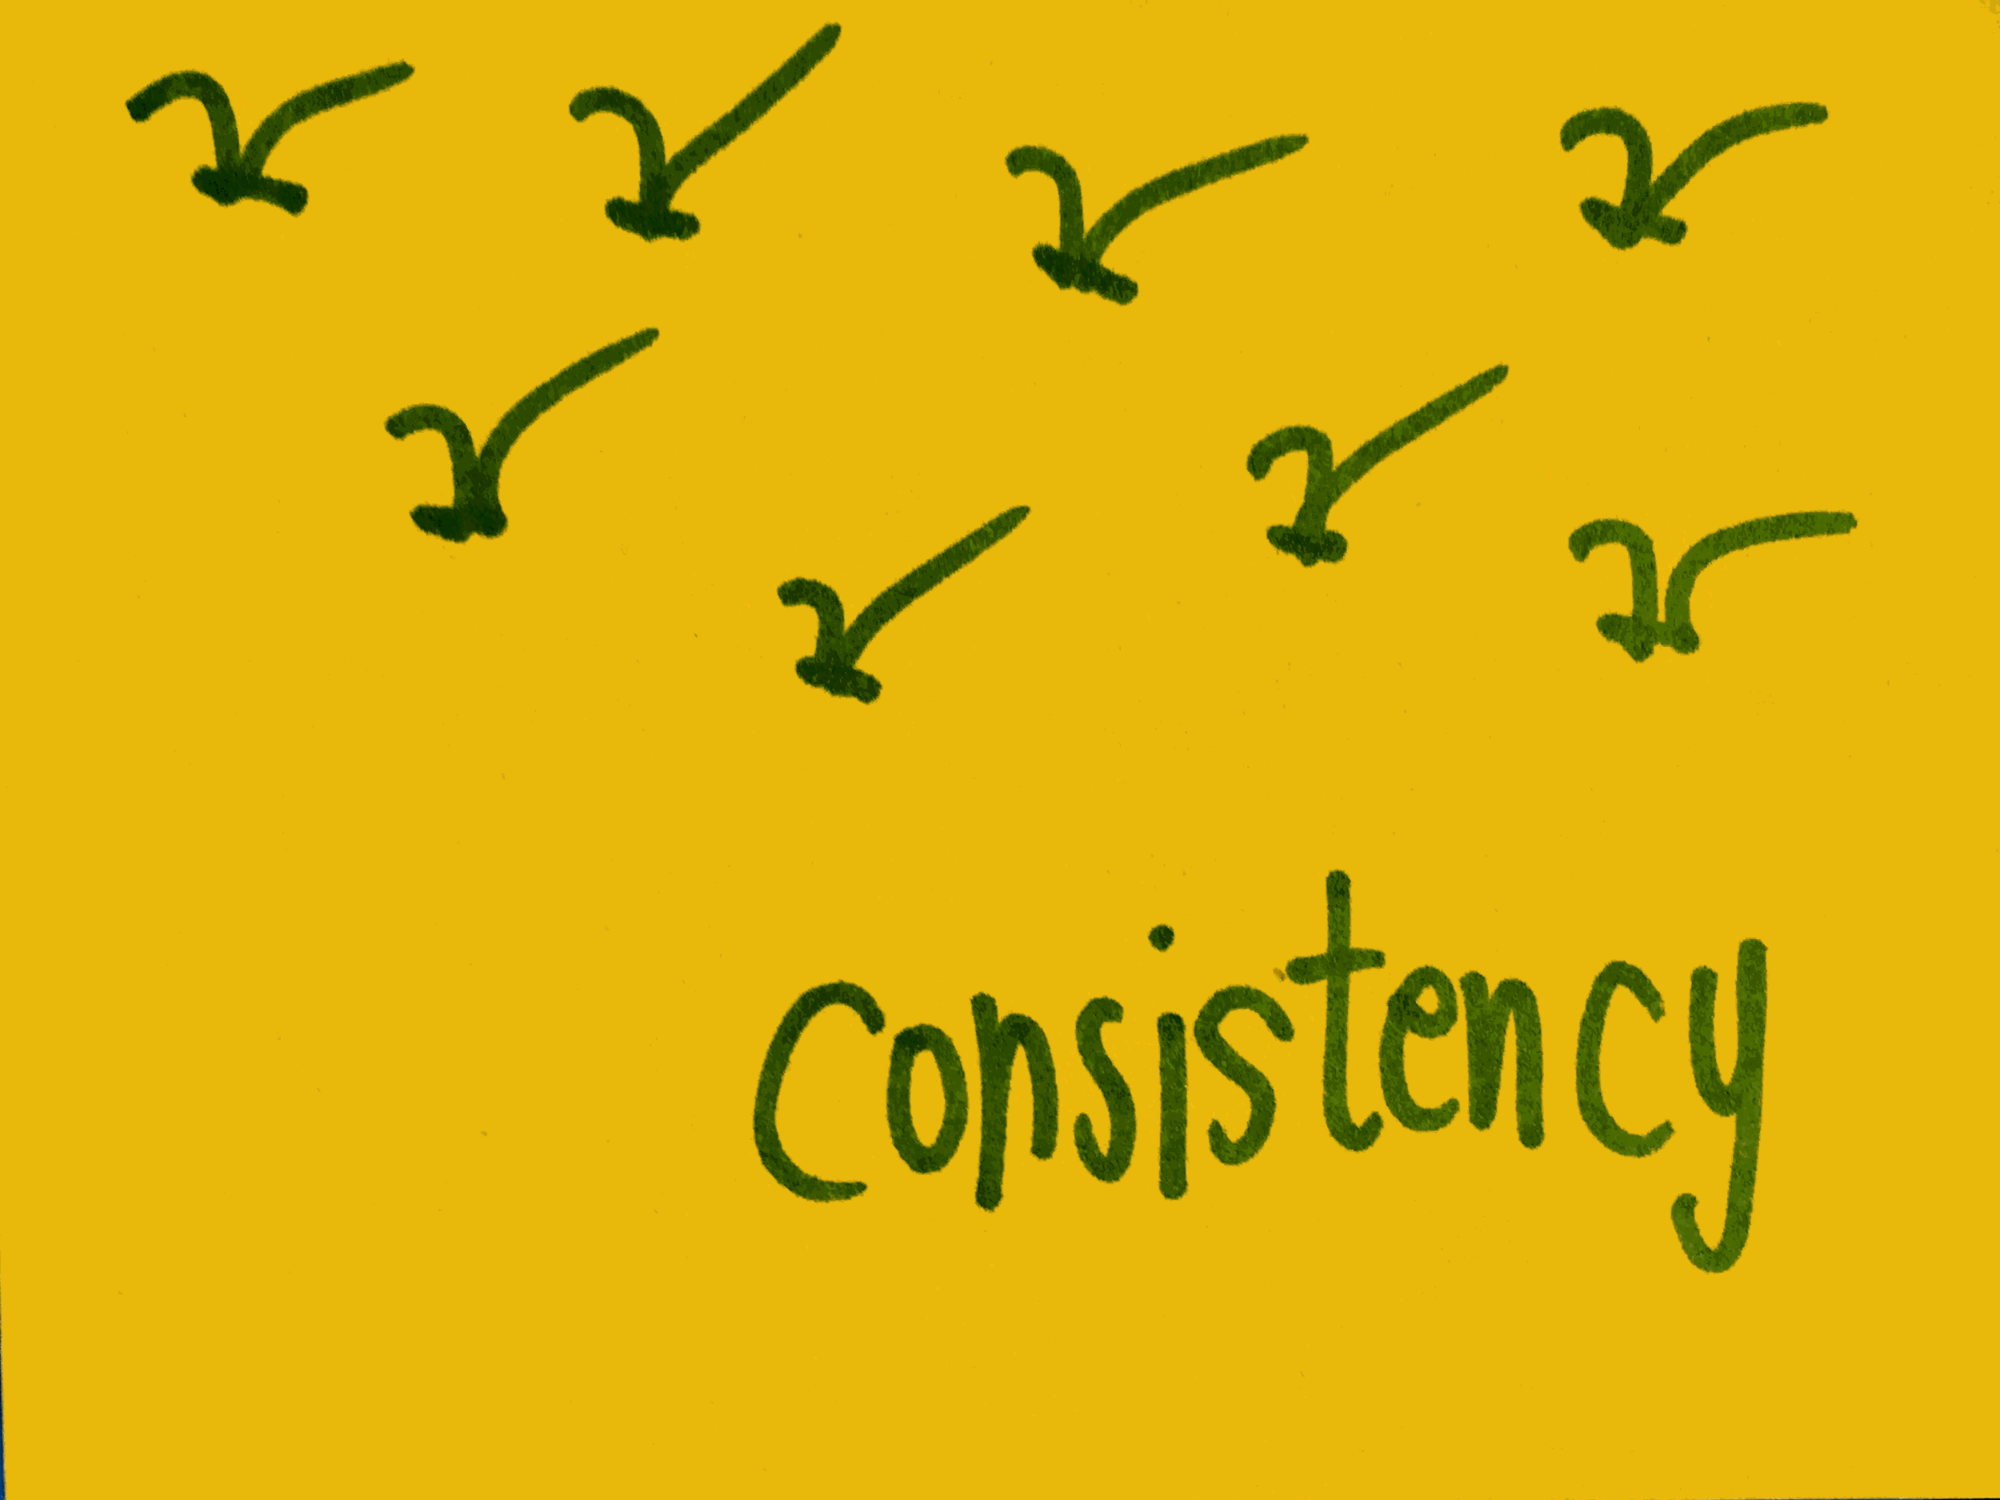 Consistency Strengthsfinder Synchronised Bird Flying